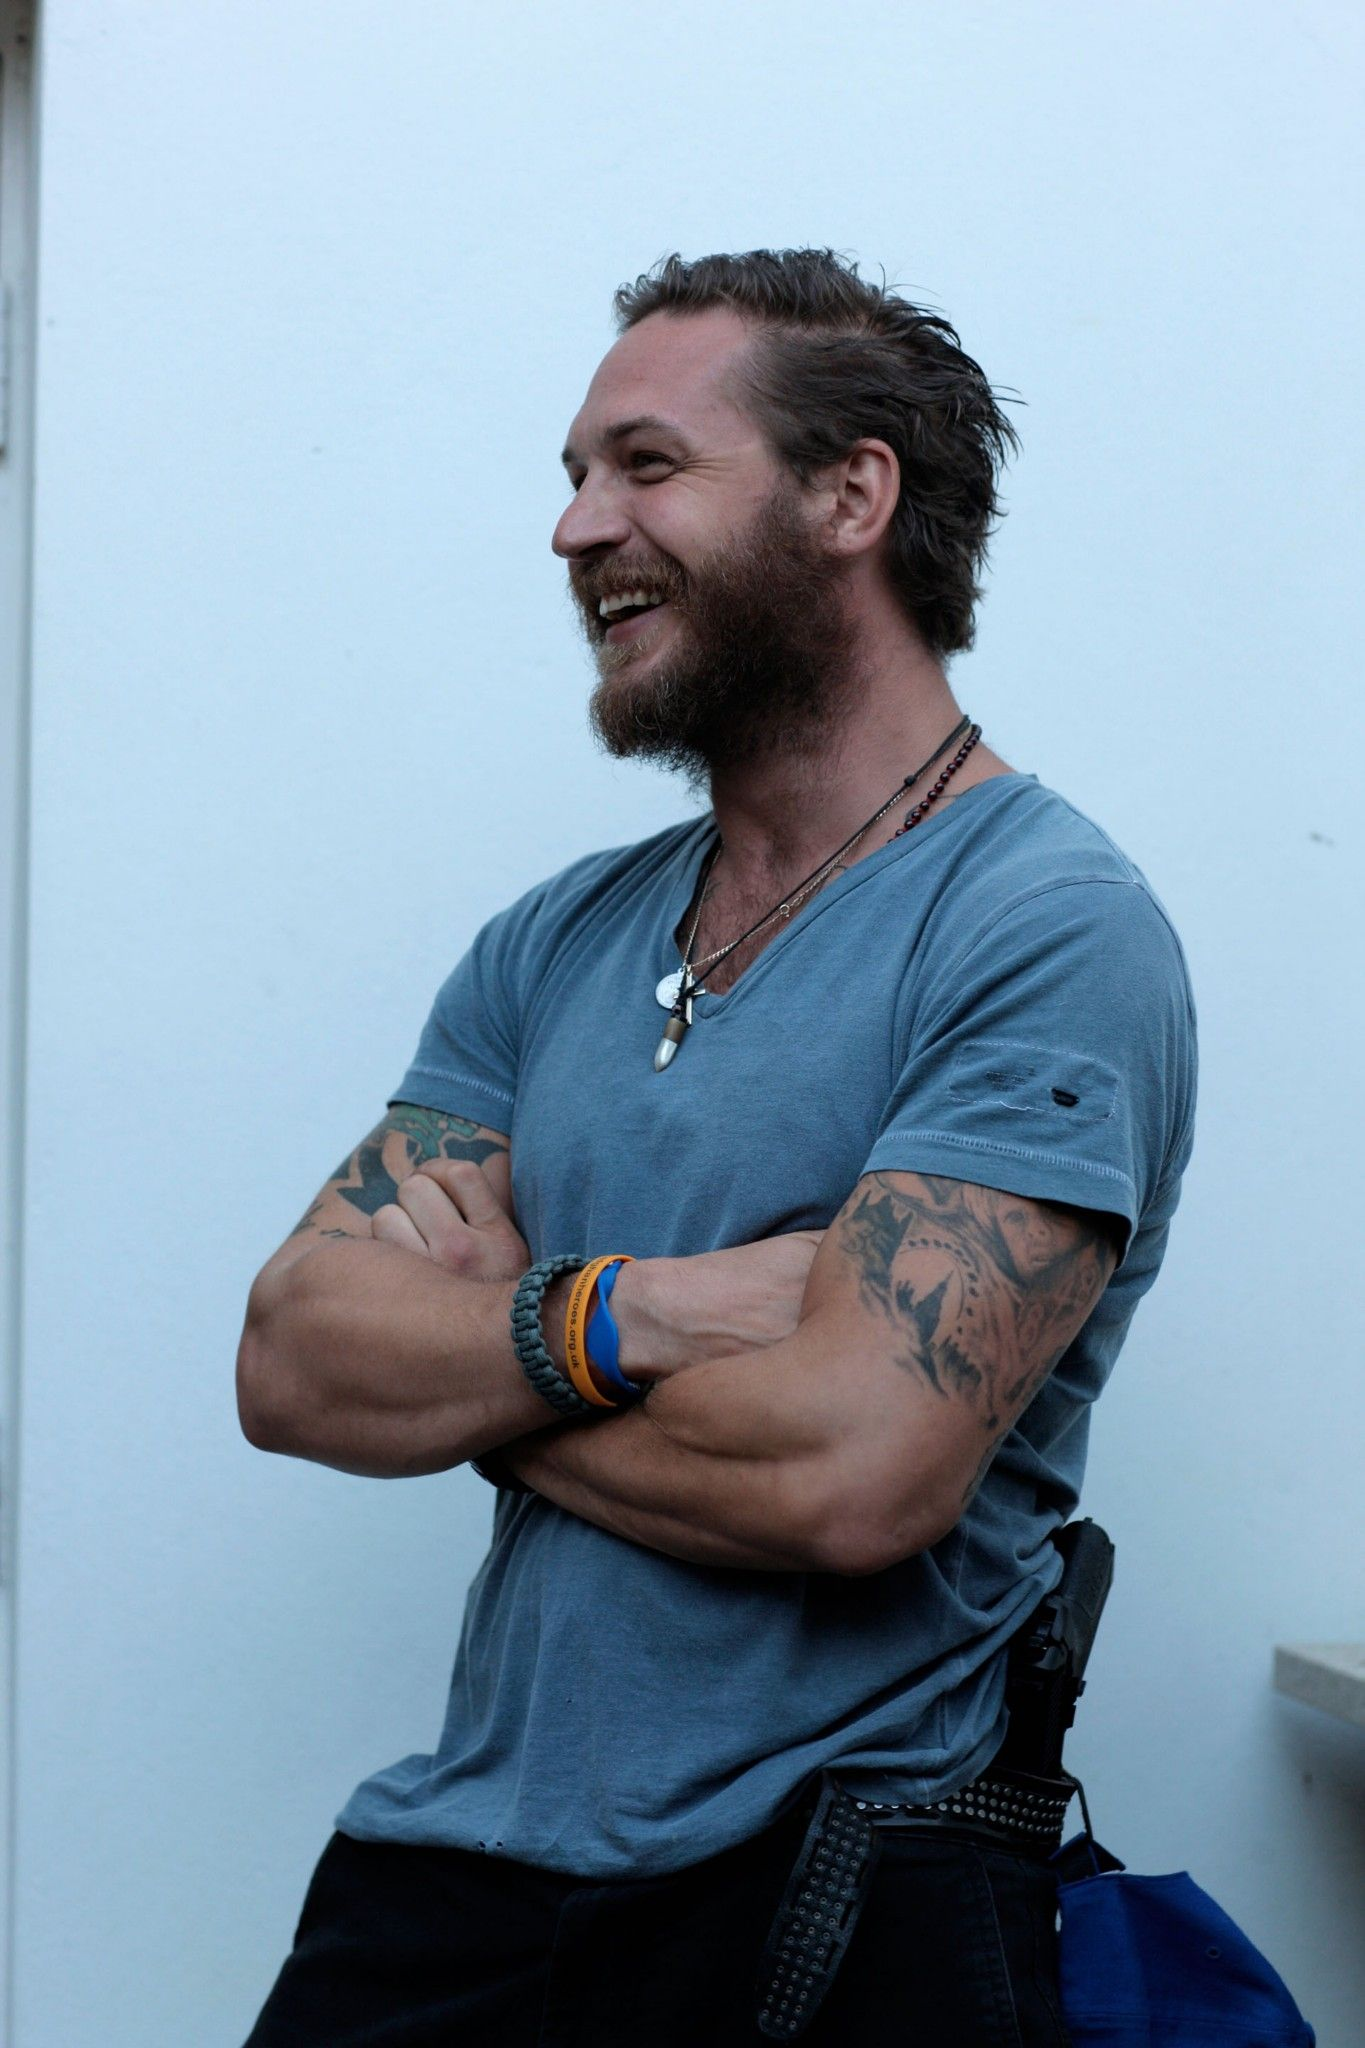 Pin by Patty Jump on Tom Hardy in 2020 Tom hardy photos